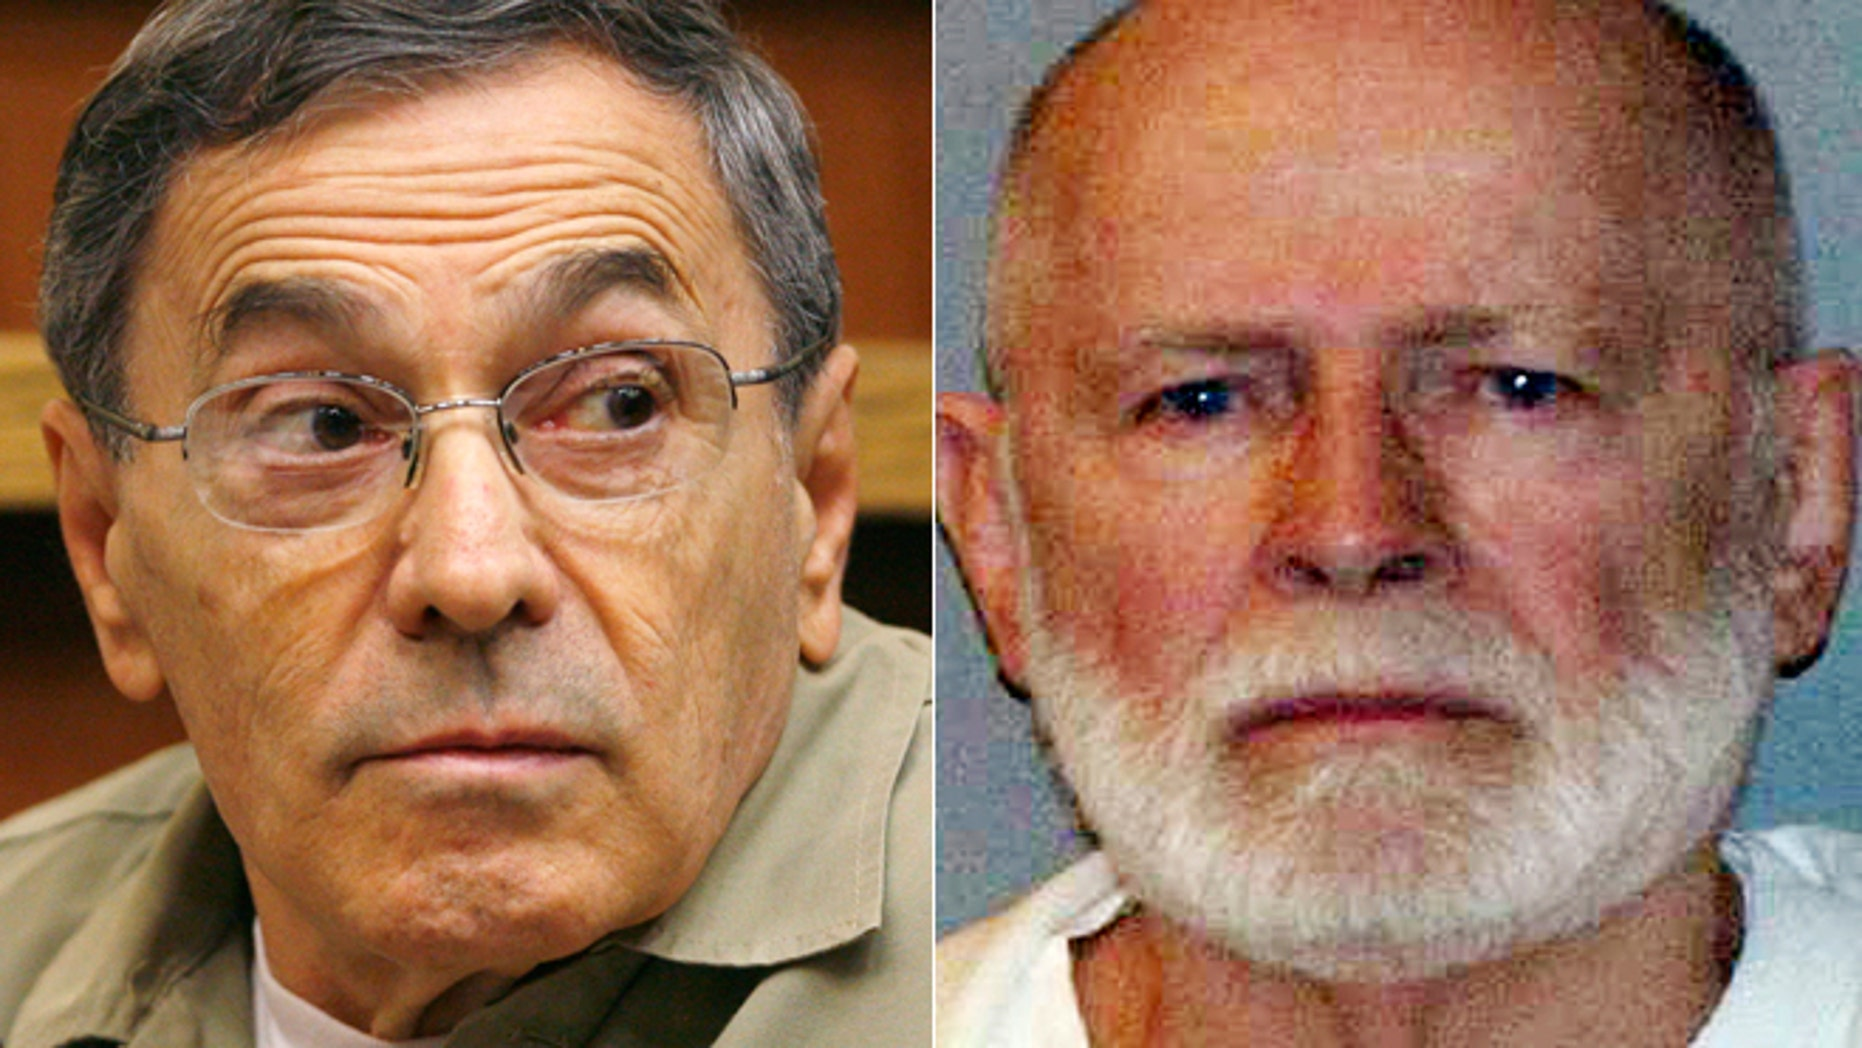 "This pair of file photos shows Stephen ""The Rifleman"" Flemmi, left, on Sept. 22, 2008, as he testified in a Miami court in the murder trial of former FBI agent John Connolly; and James ""Whitey"" Bulger, right, in a June 23, 2011 booking photo provided by the U.S. Marshals Service."